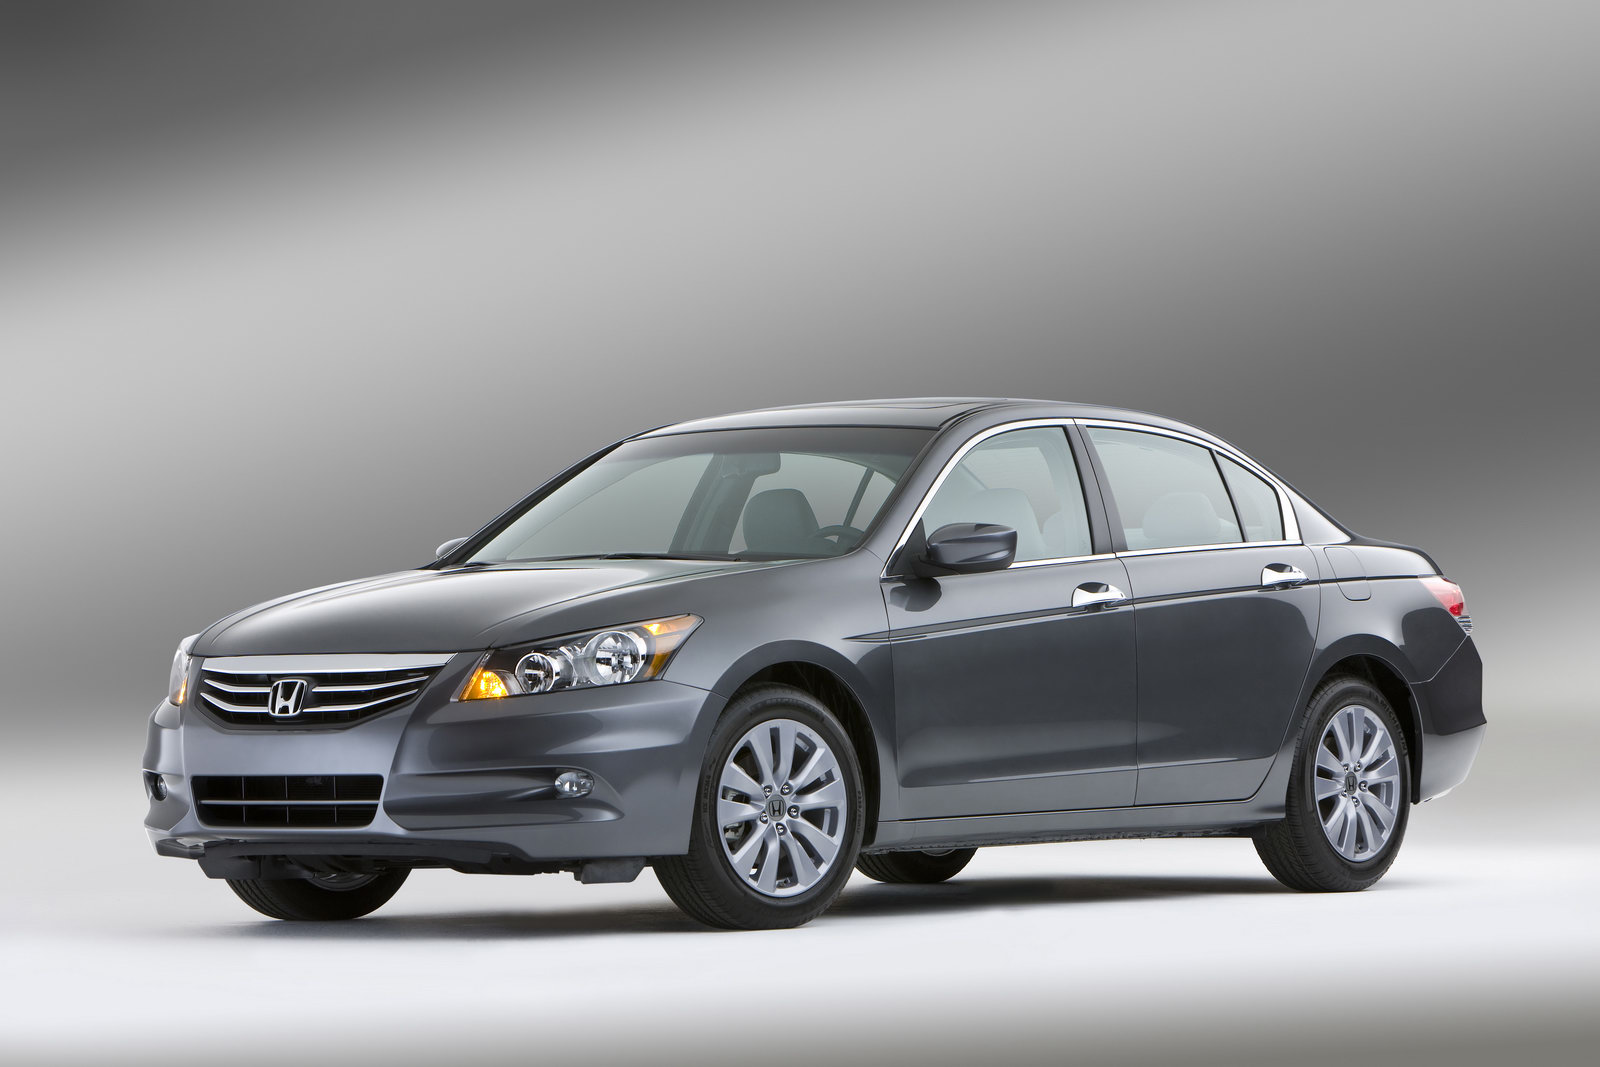 unveiled today the 2011 honda accord sedan and the 2011 honda accord ...